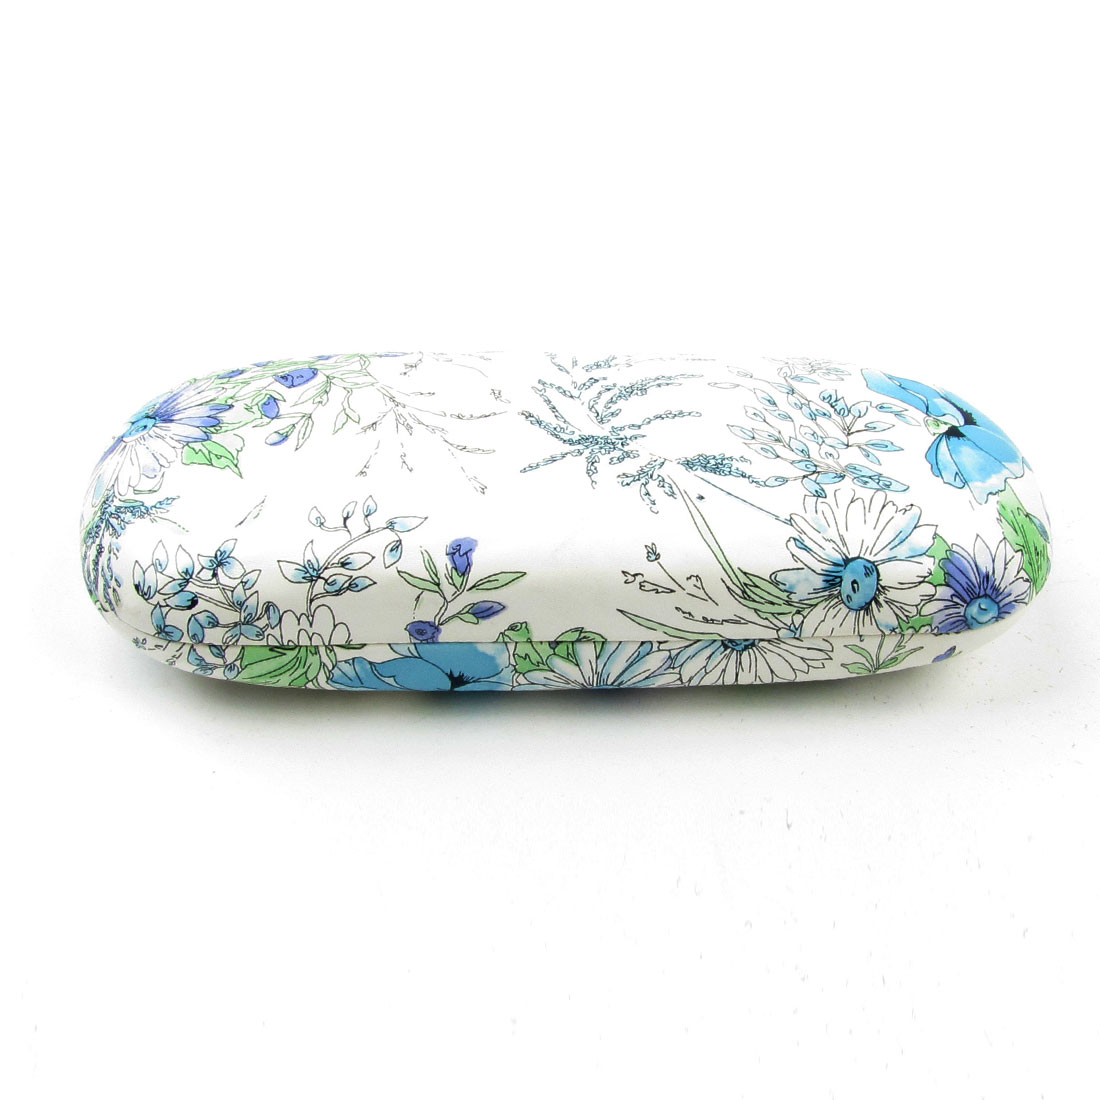 "6.3"" Length Blue Flowers Print White Faux Leather Eyeglasses Case Container"